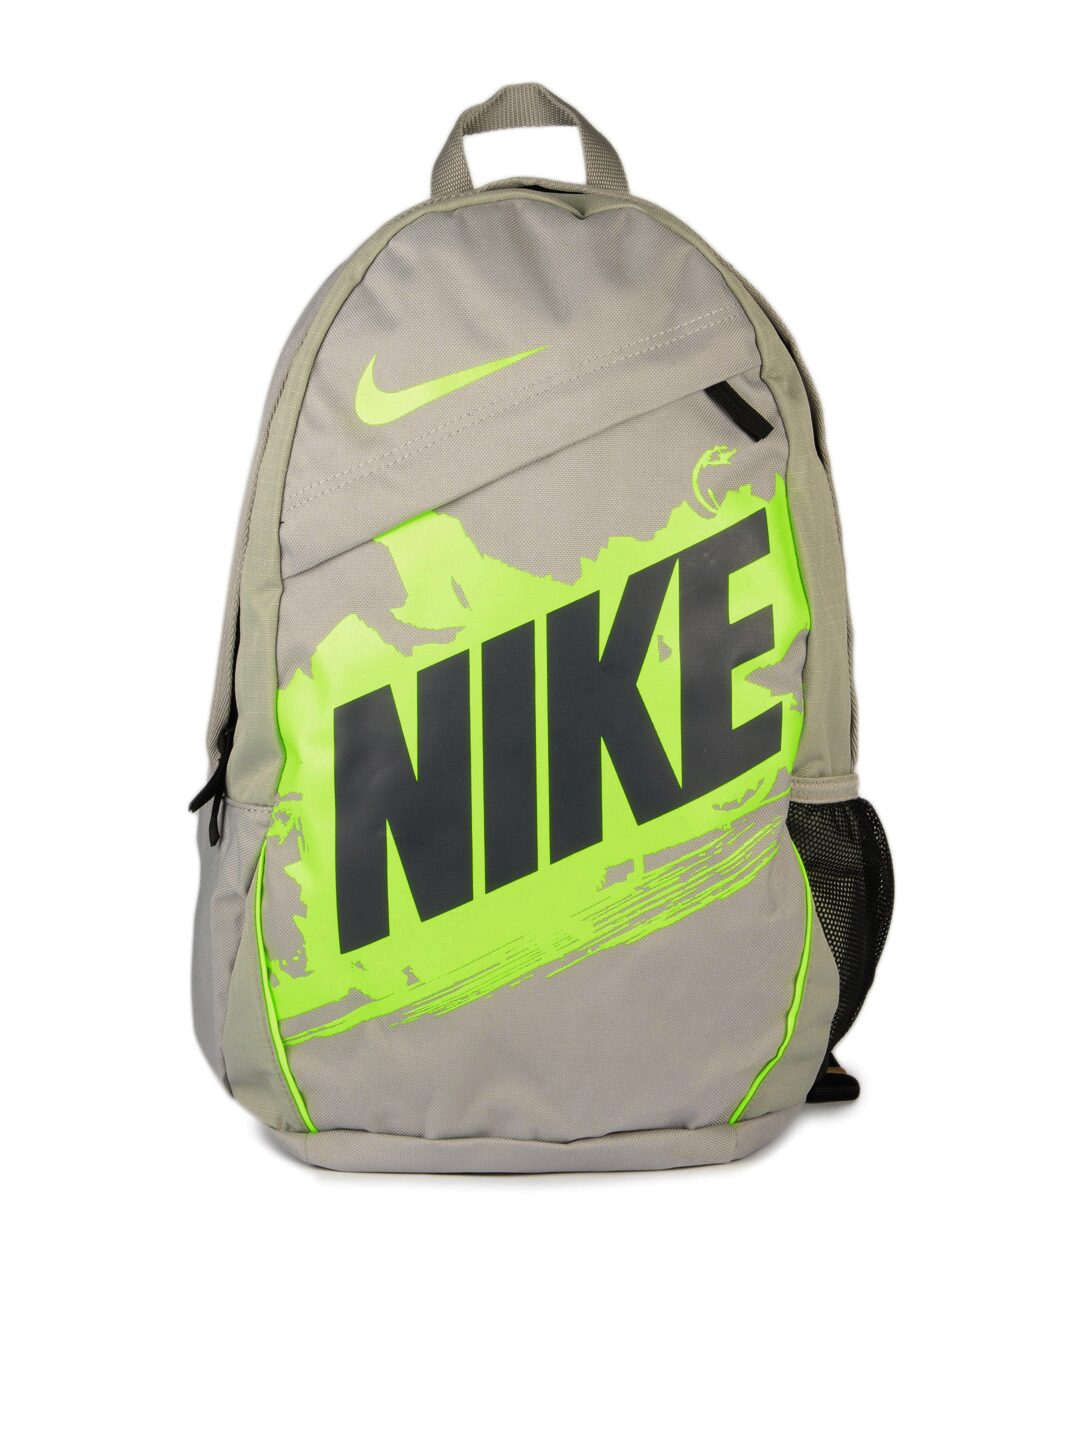 ... online store 7abaa 95910 grey and green nike backpack  quality design  ... 07d3164a3107c